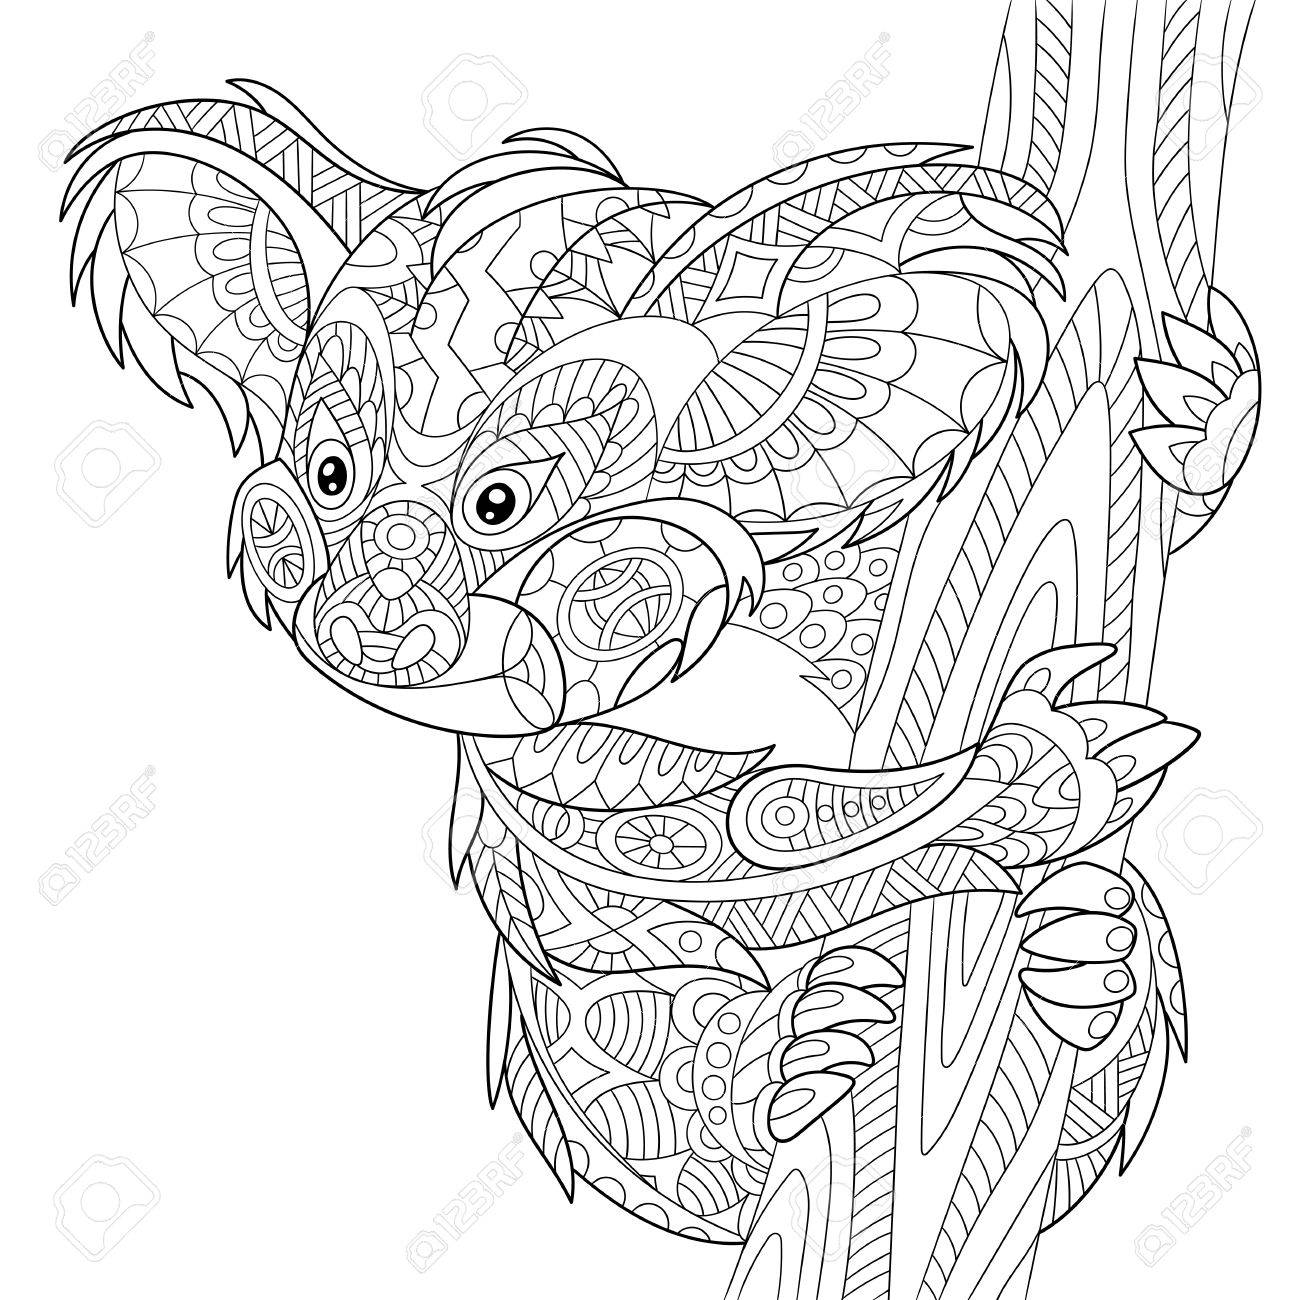 stylized cartoon koala bear, isolated on white background. Hand drawn sketch for adult antistress coloring page, T-shirt emblem or tattoo with doodle, floral design elements. - 56874135